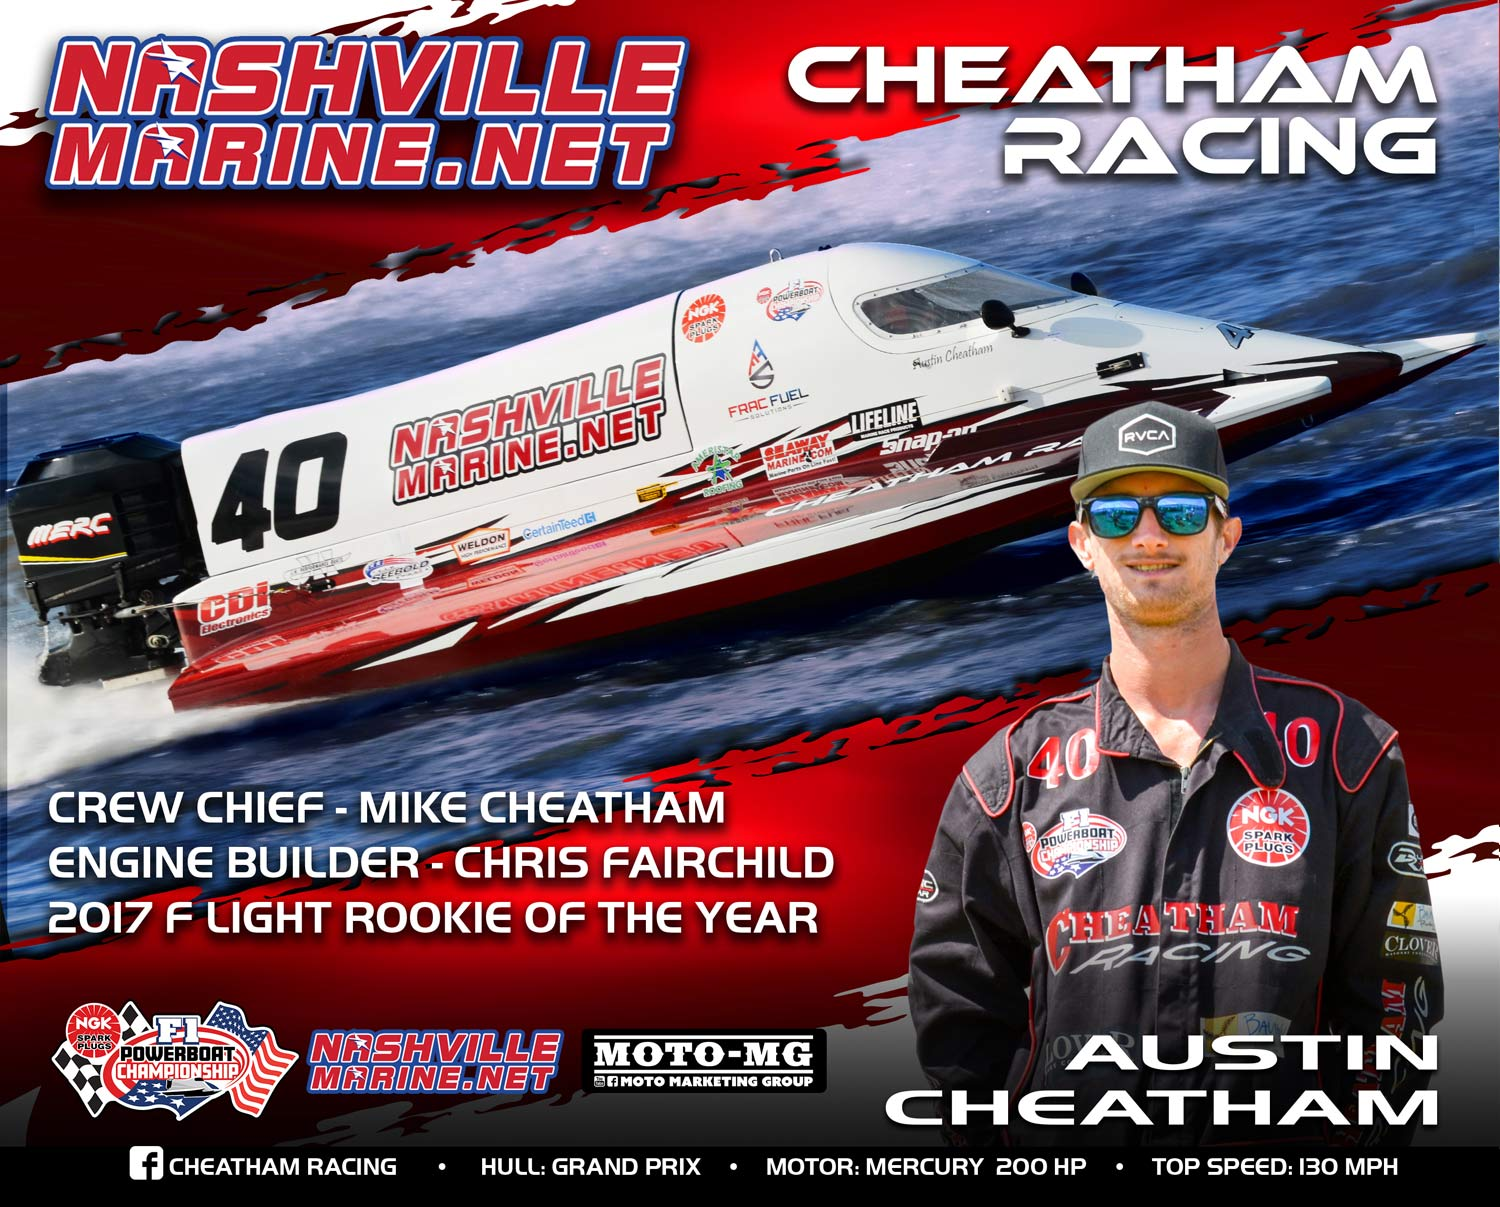 Nashville-Marine-McMurray-Racing-Formula-One-Boat-Racing-Driver-Austin-Cheatham-40